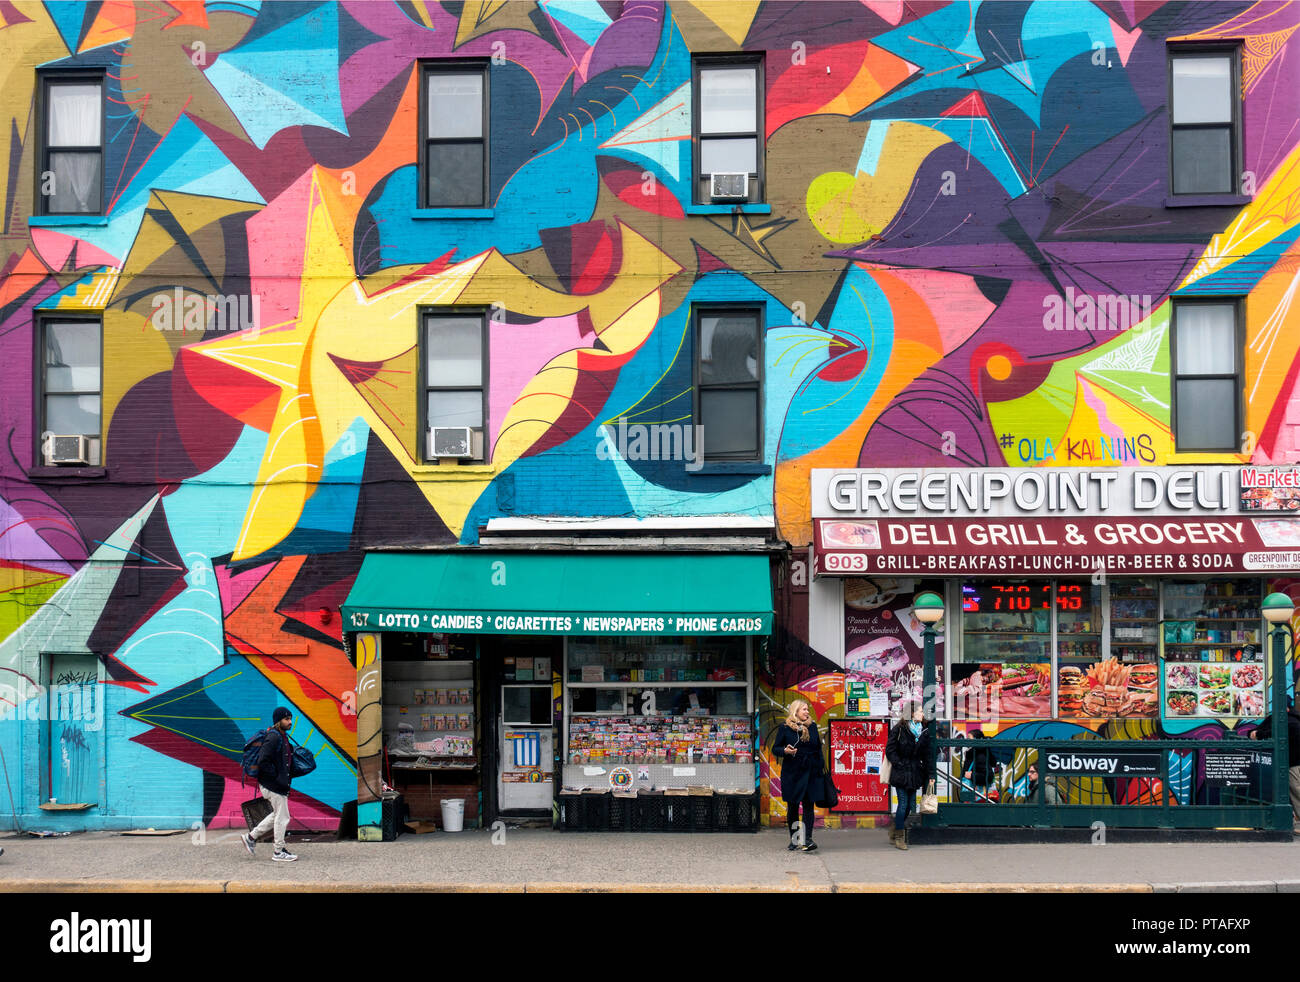 public mural Greenpoint Brooklyn NYC - Stock Image